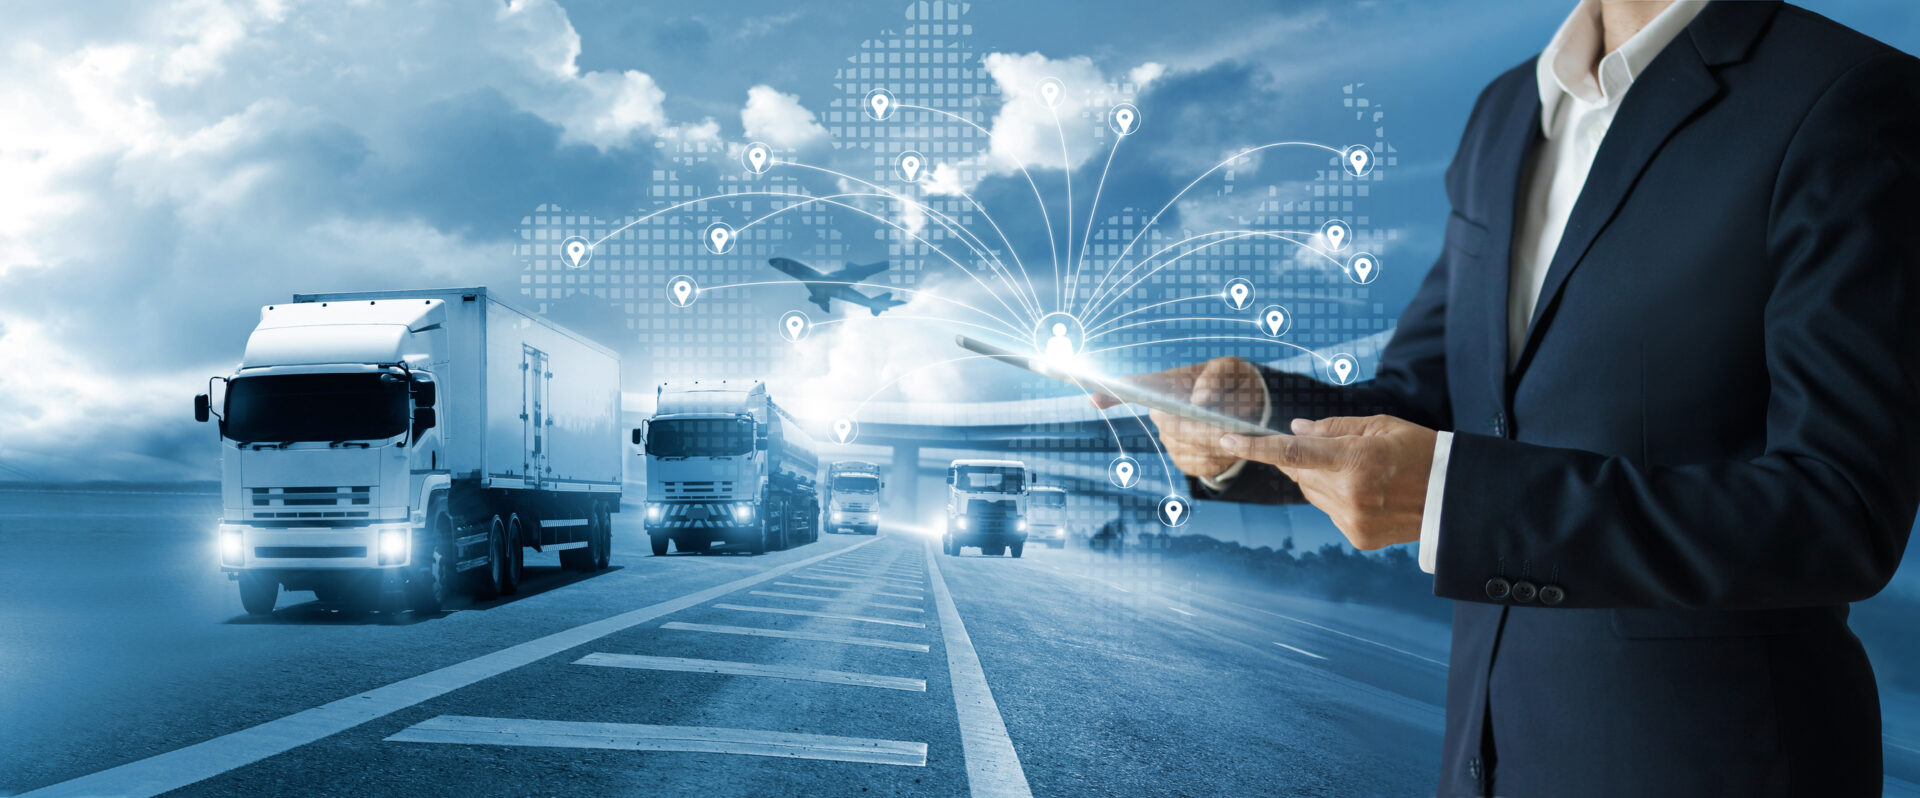 Transport and logistic concept, Freight shipping online, Businessman using tablet and data for global logistic network distribution on world map background, Business and technology, Blue tone.